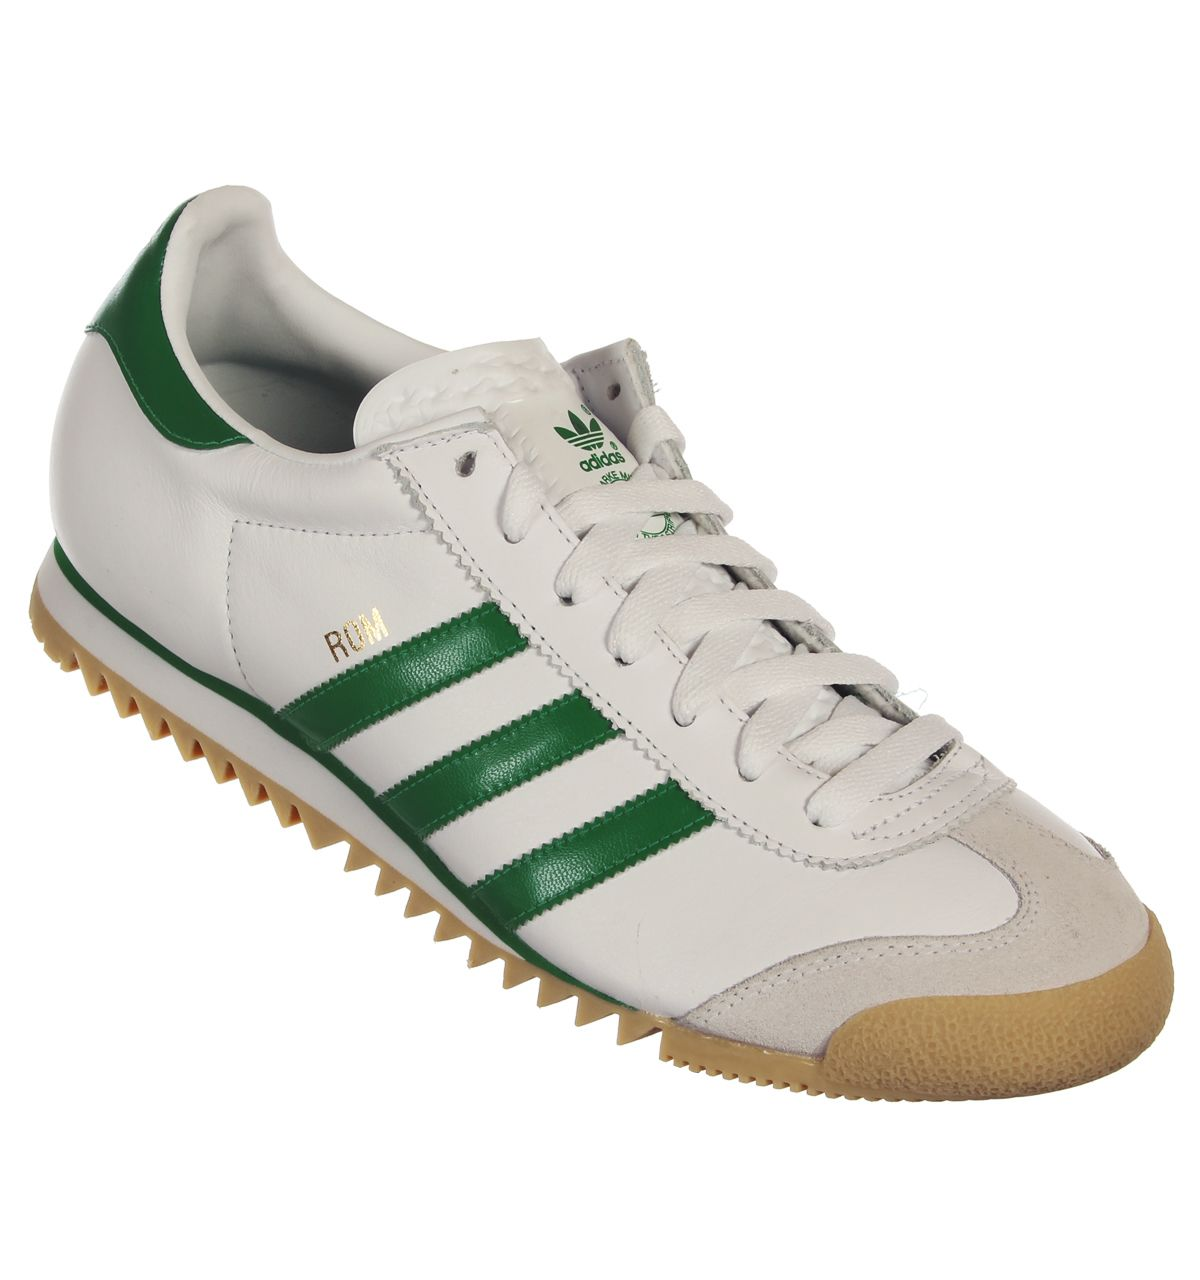 New adidas Originals Rom Mens trainers UK 7 to 11 vintage